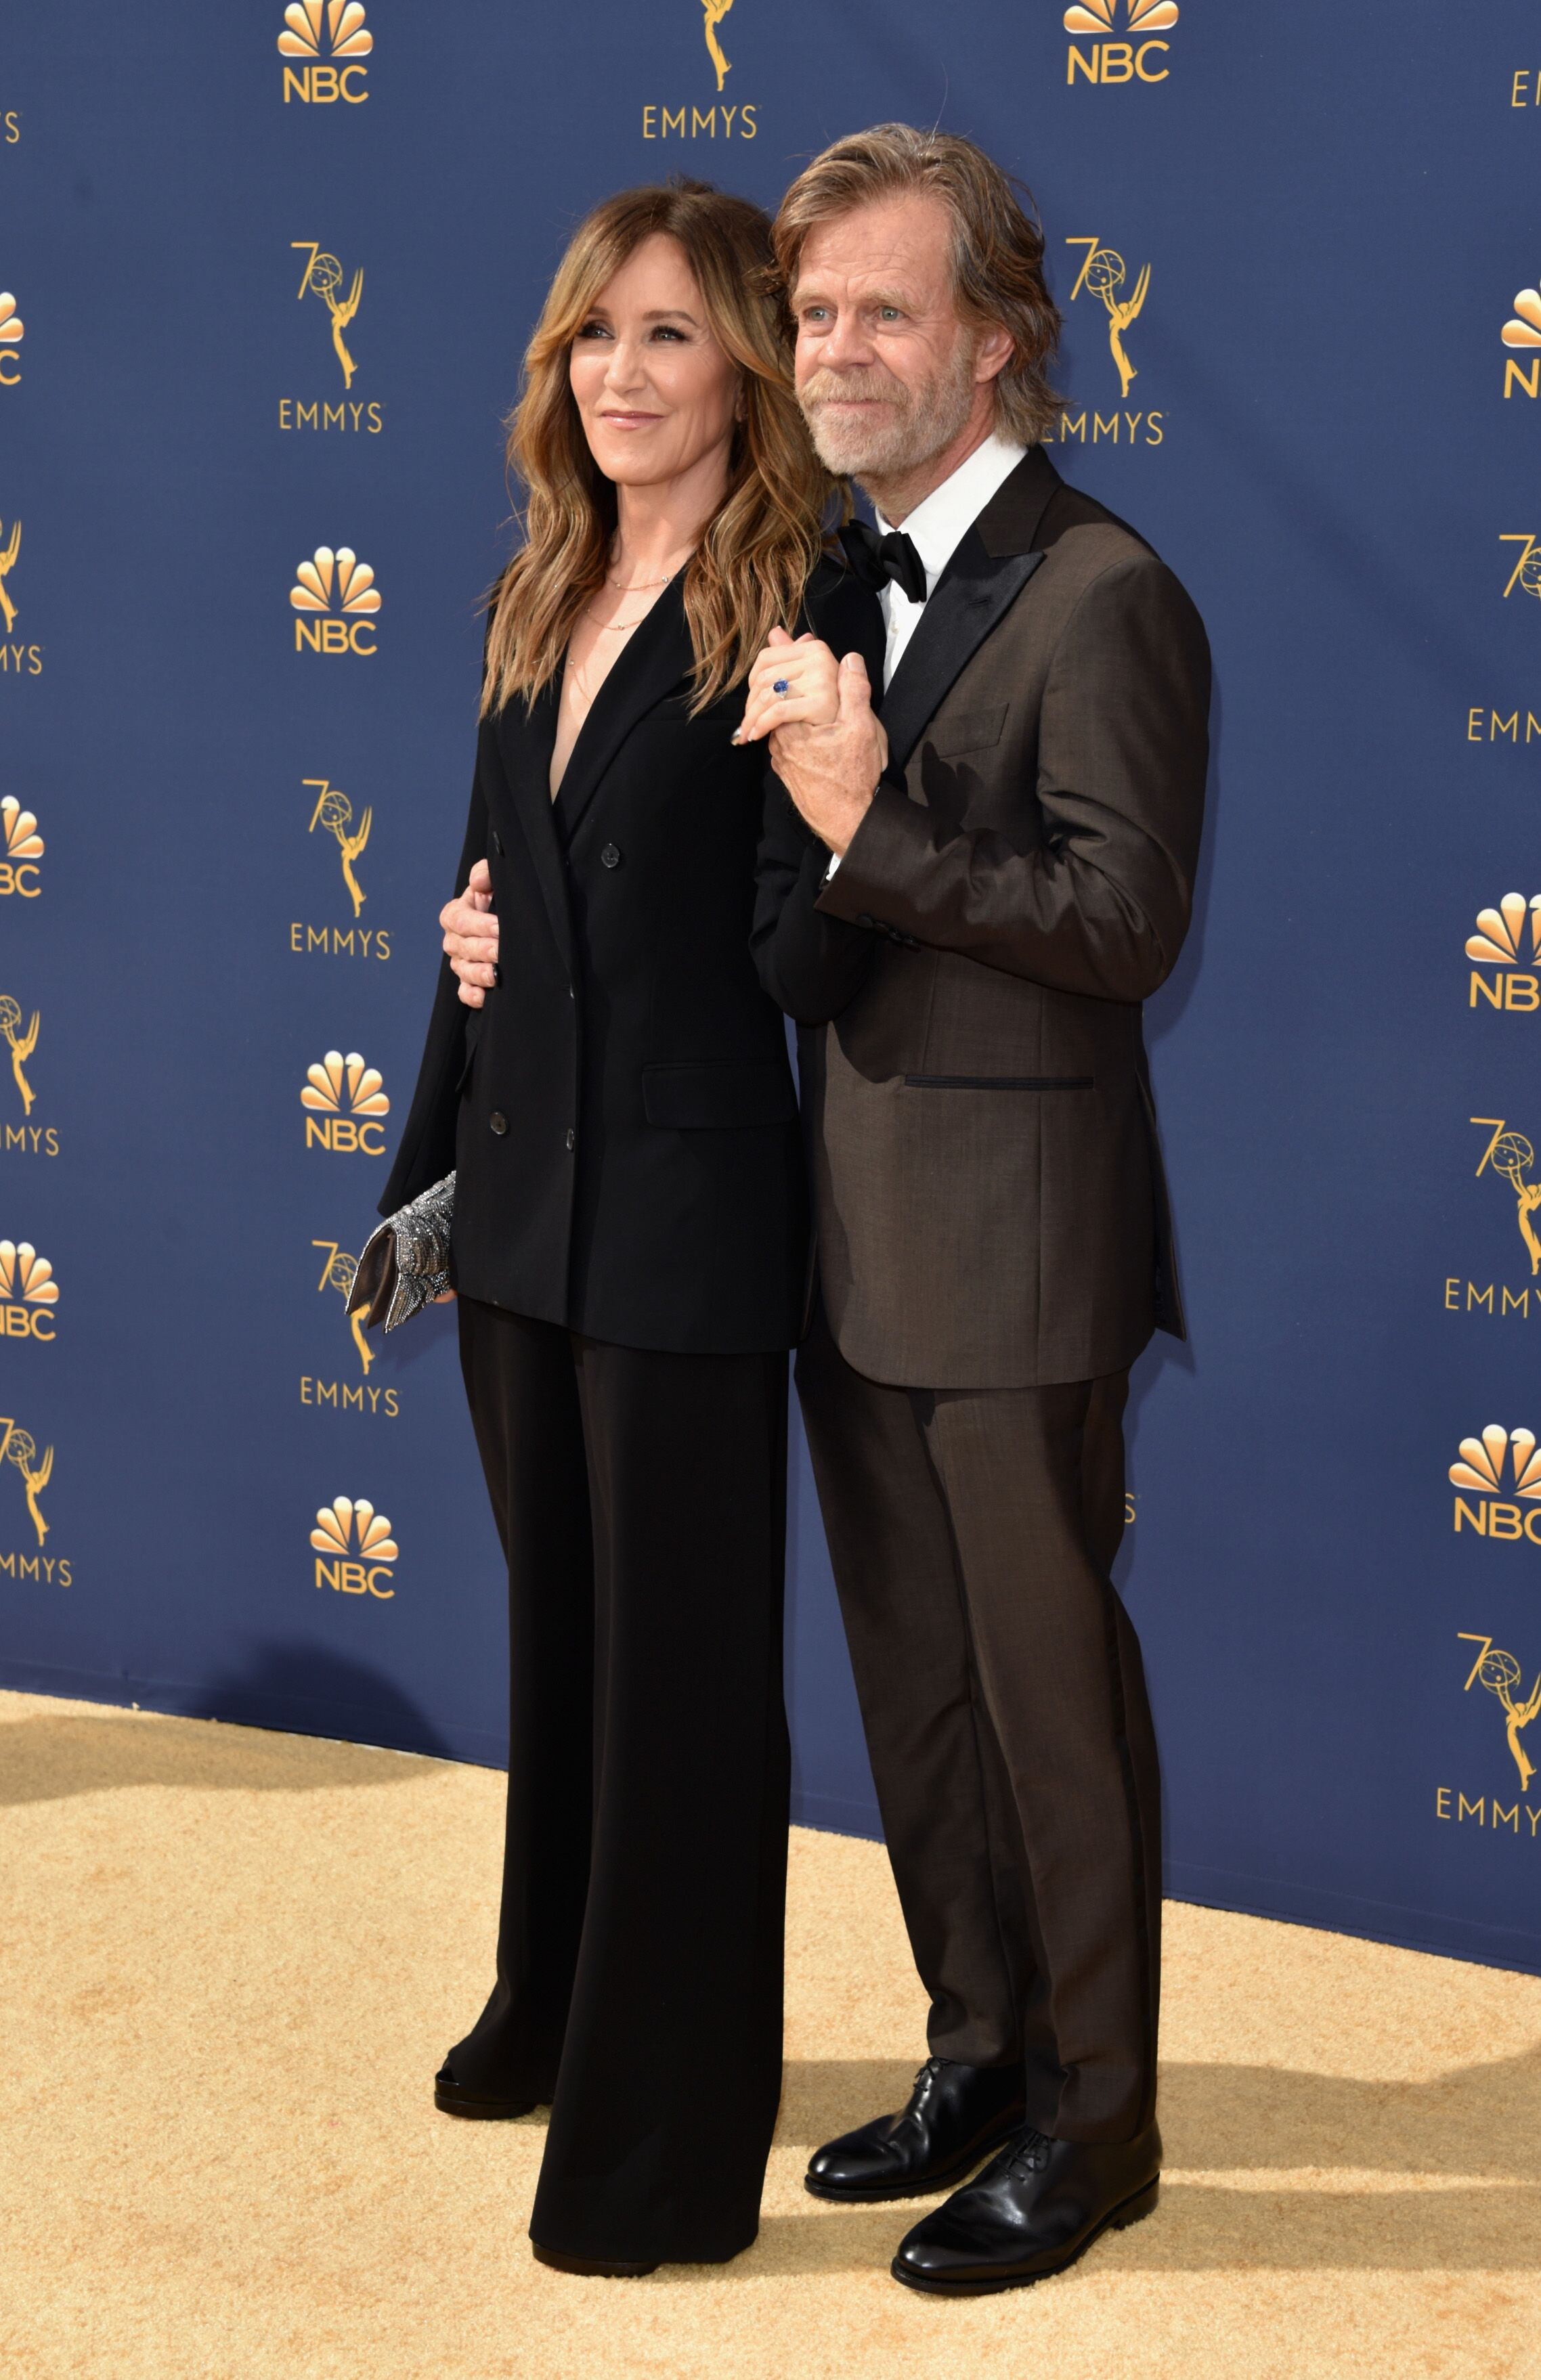 Felicity Huffman and William H. Macy at the 70th Emmy Awards on September 17, 2018, in Los Angeles, California | Photo: John Shearer/Getty Images